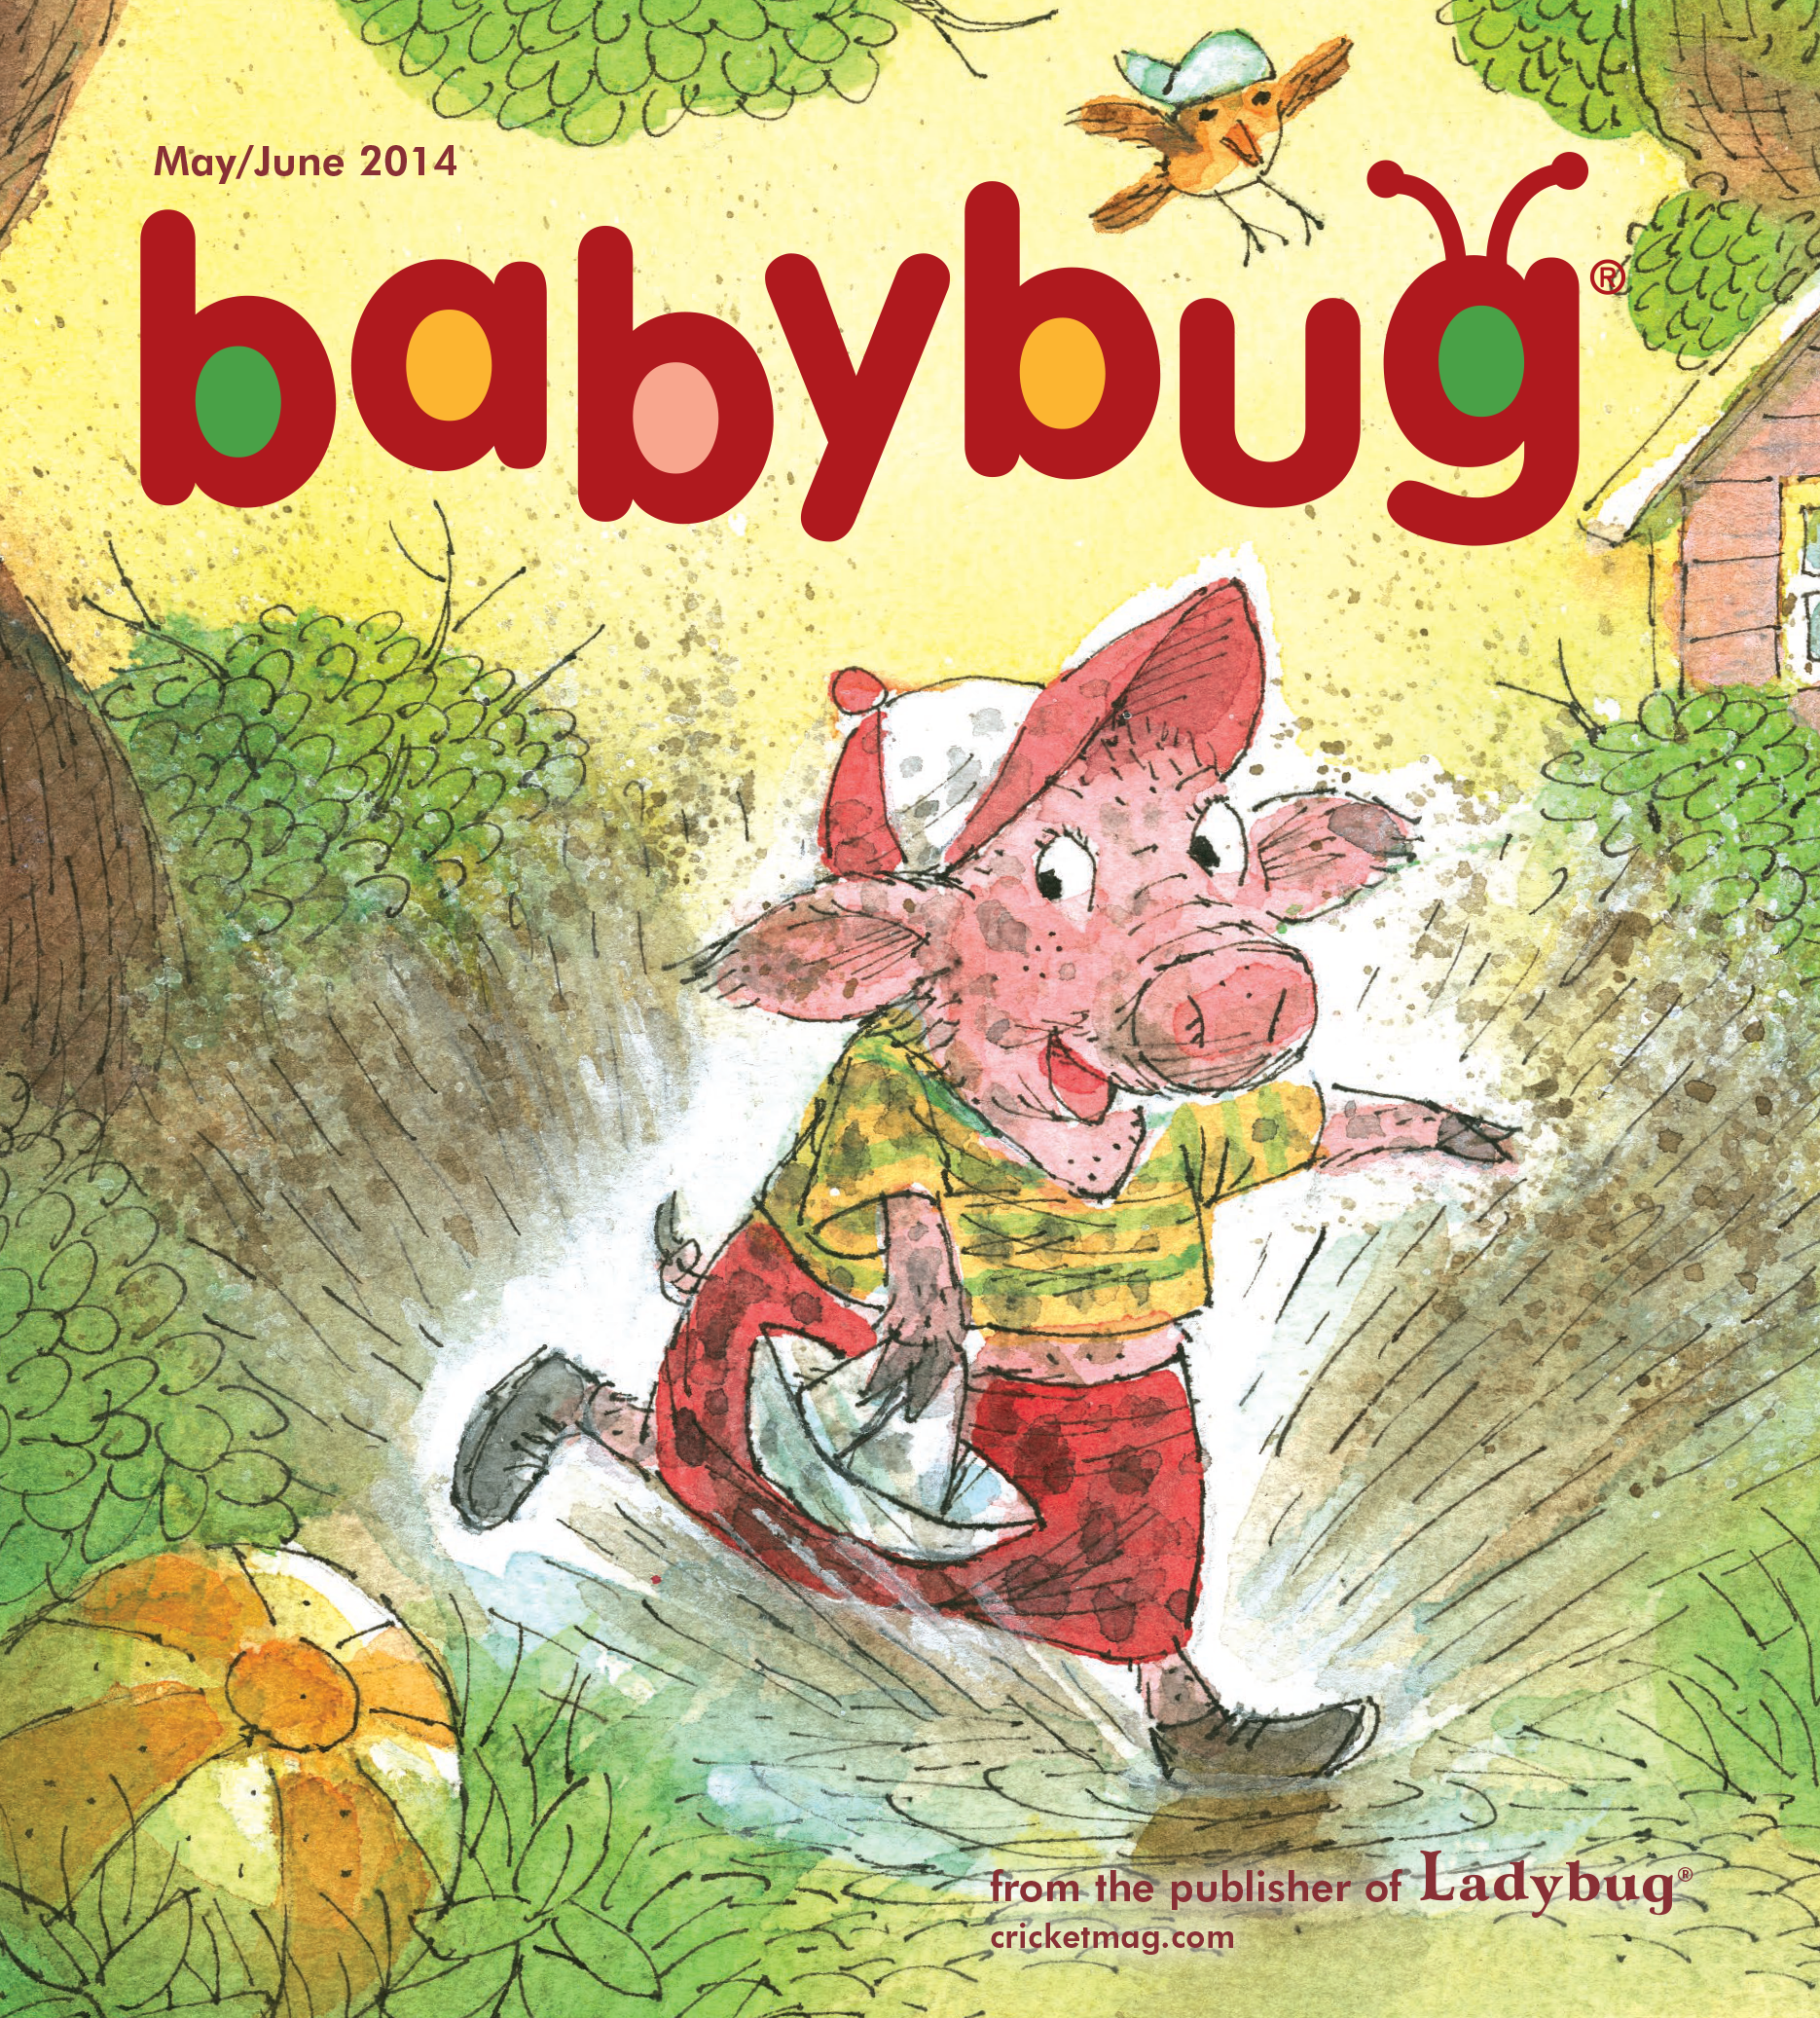 Babybug magazine cover, by Valeri Gorbachev on May/June 2014 ...